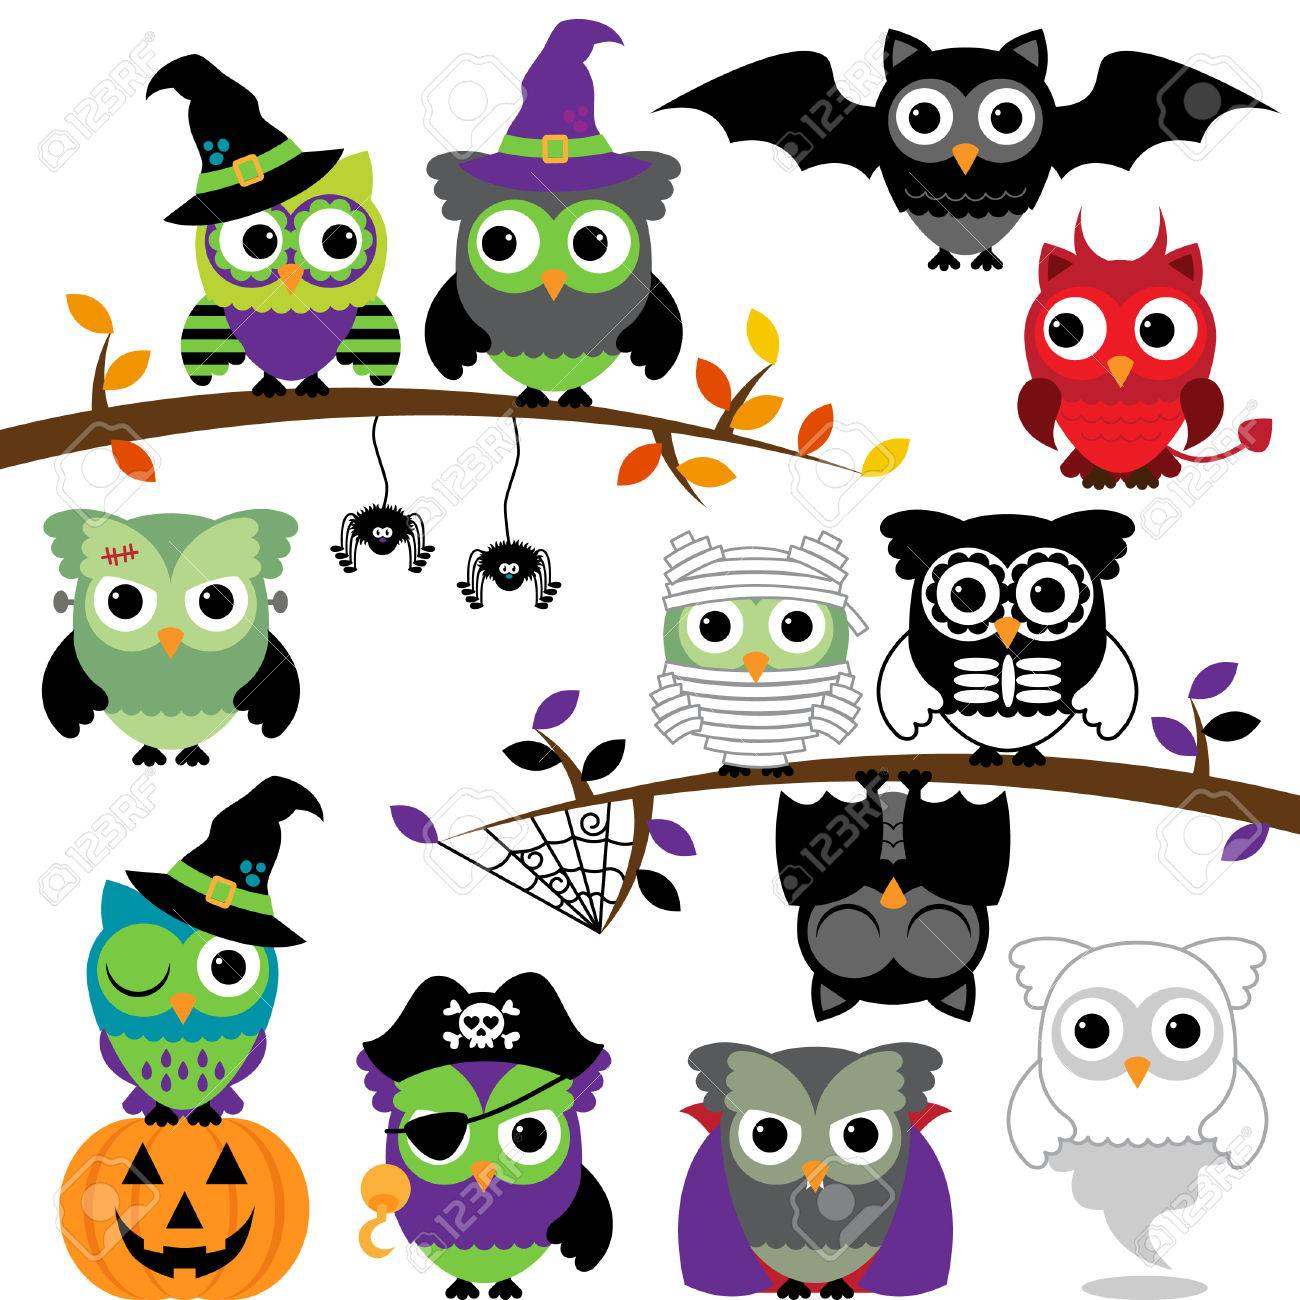 collection of spooky halloween owls royalty free cliparts, vectors